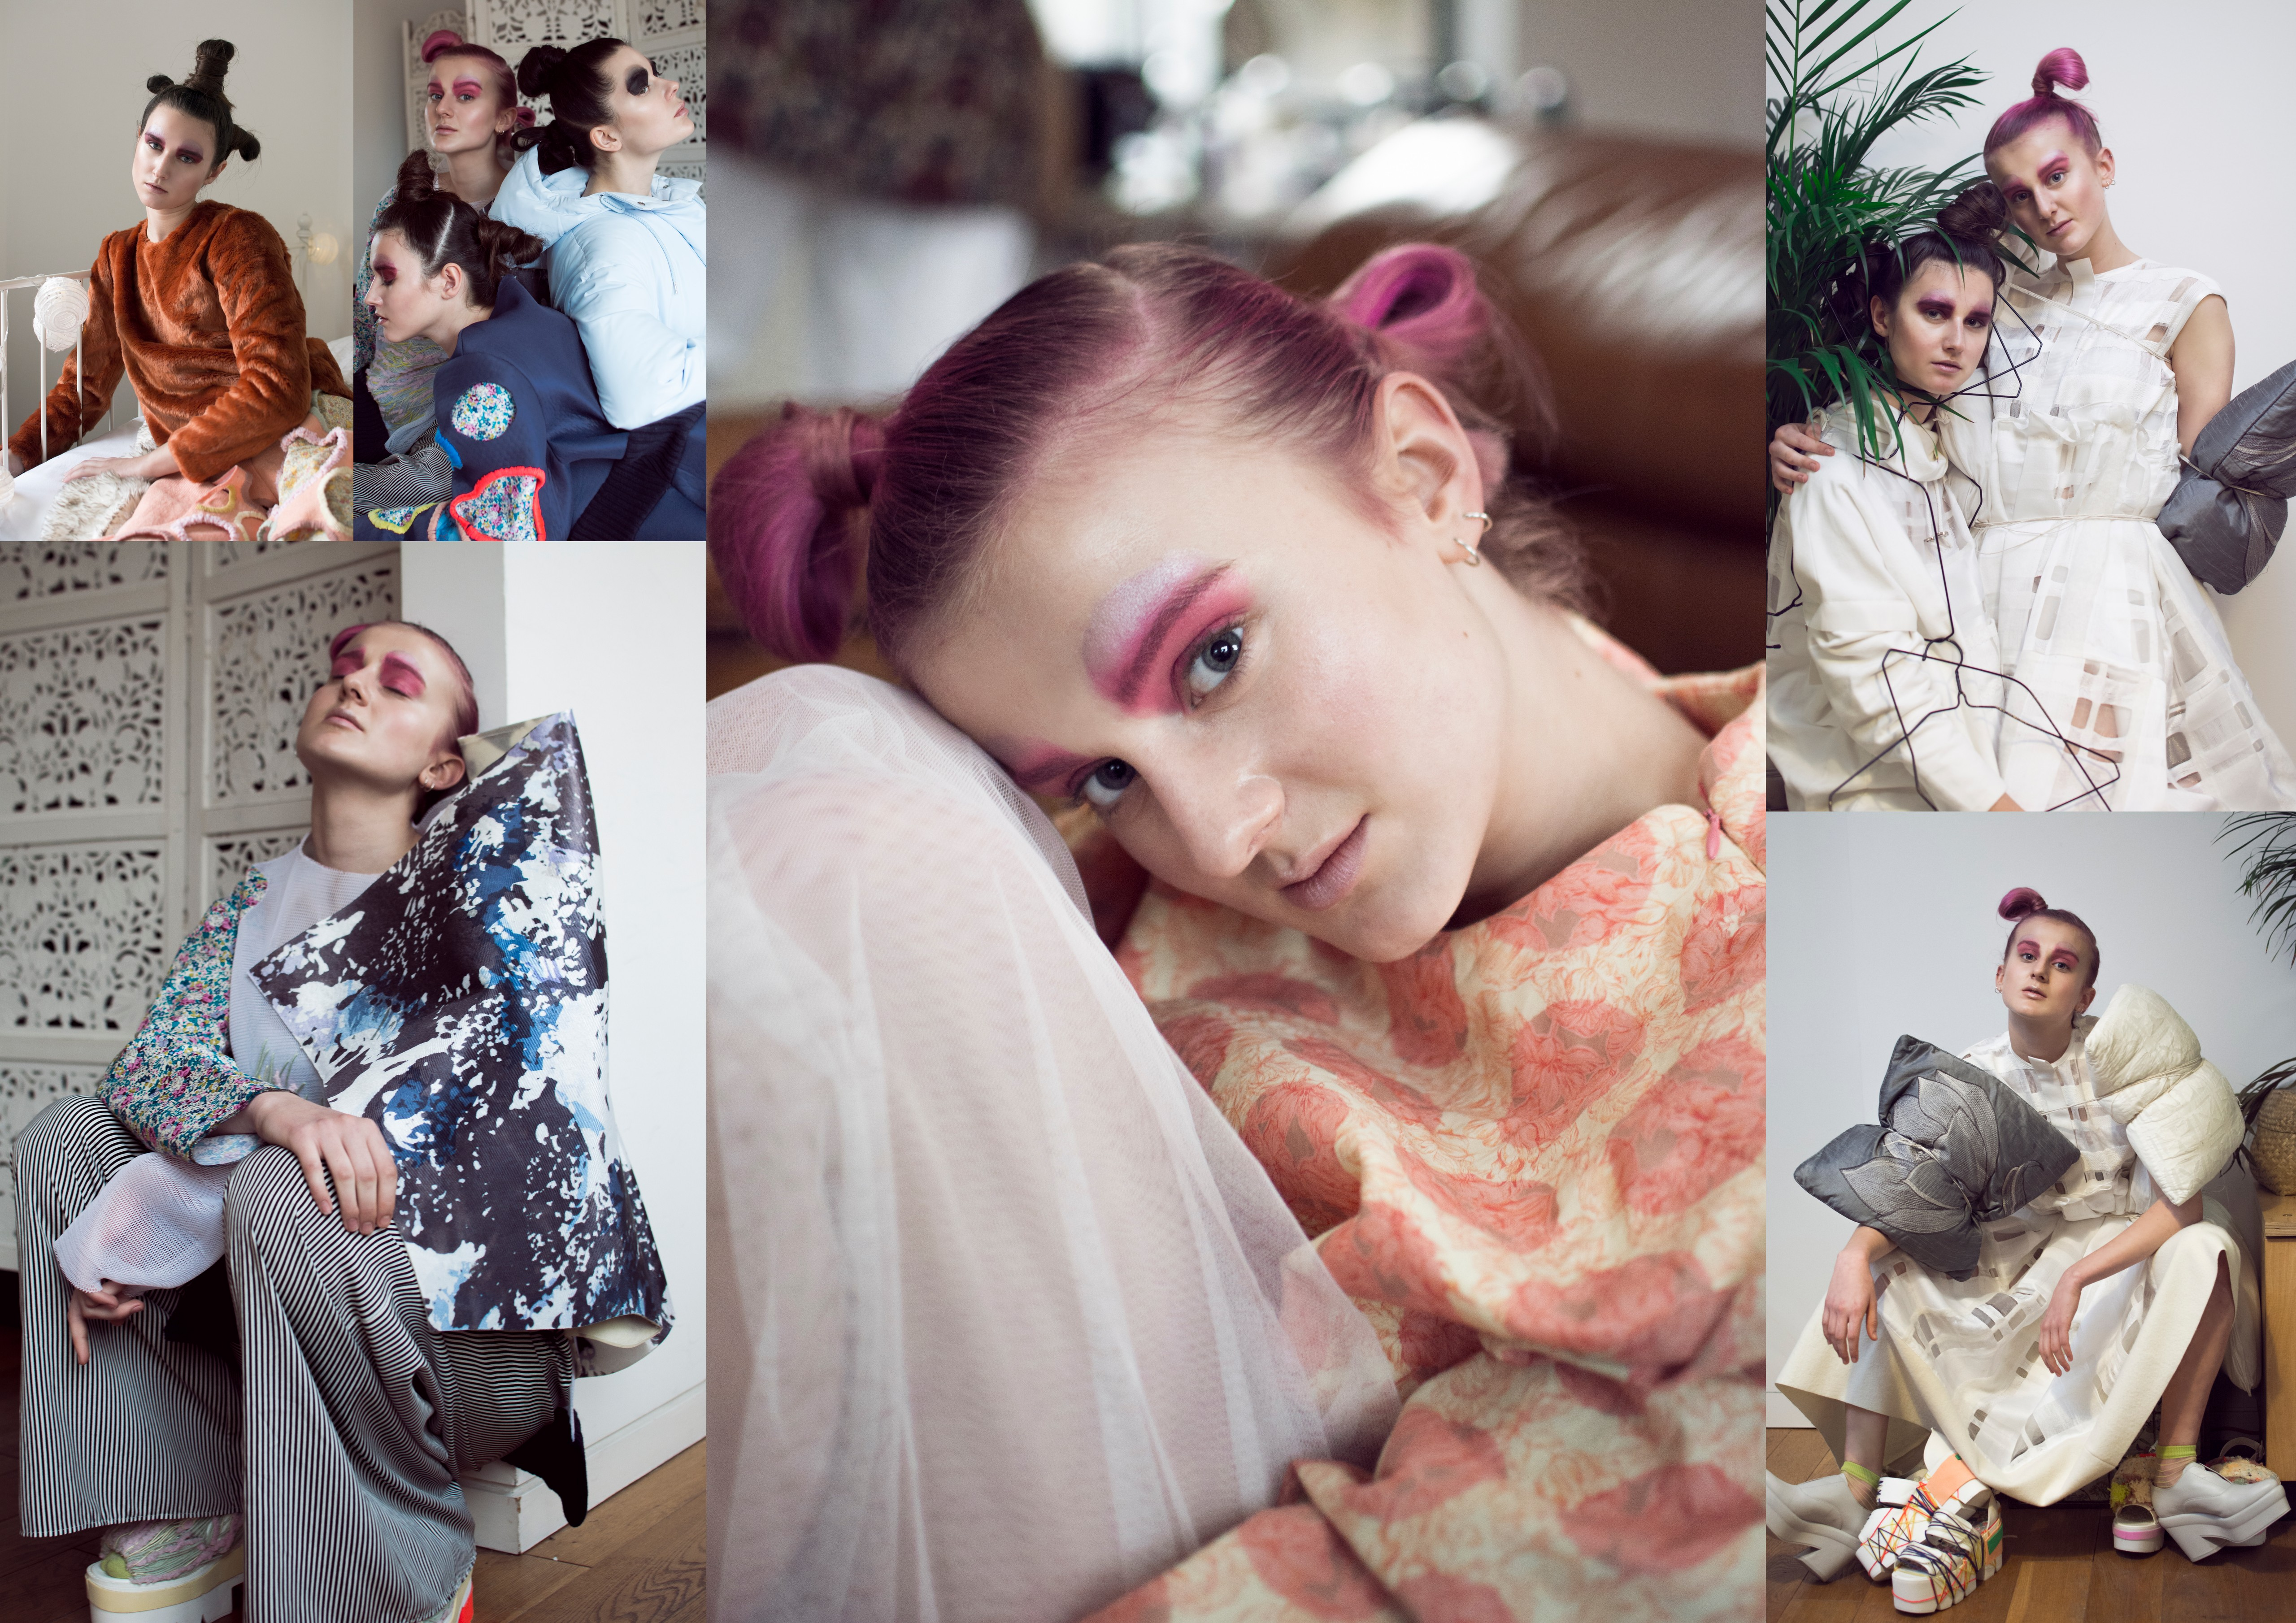 images 3 gender shoot3